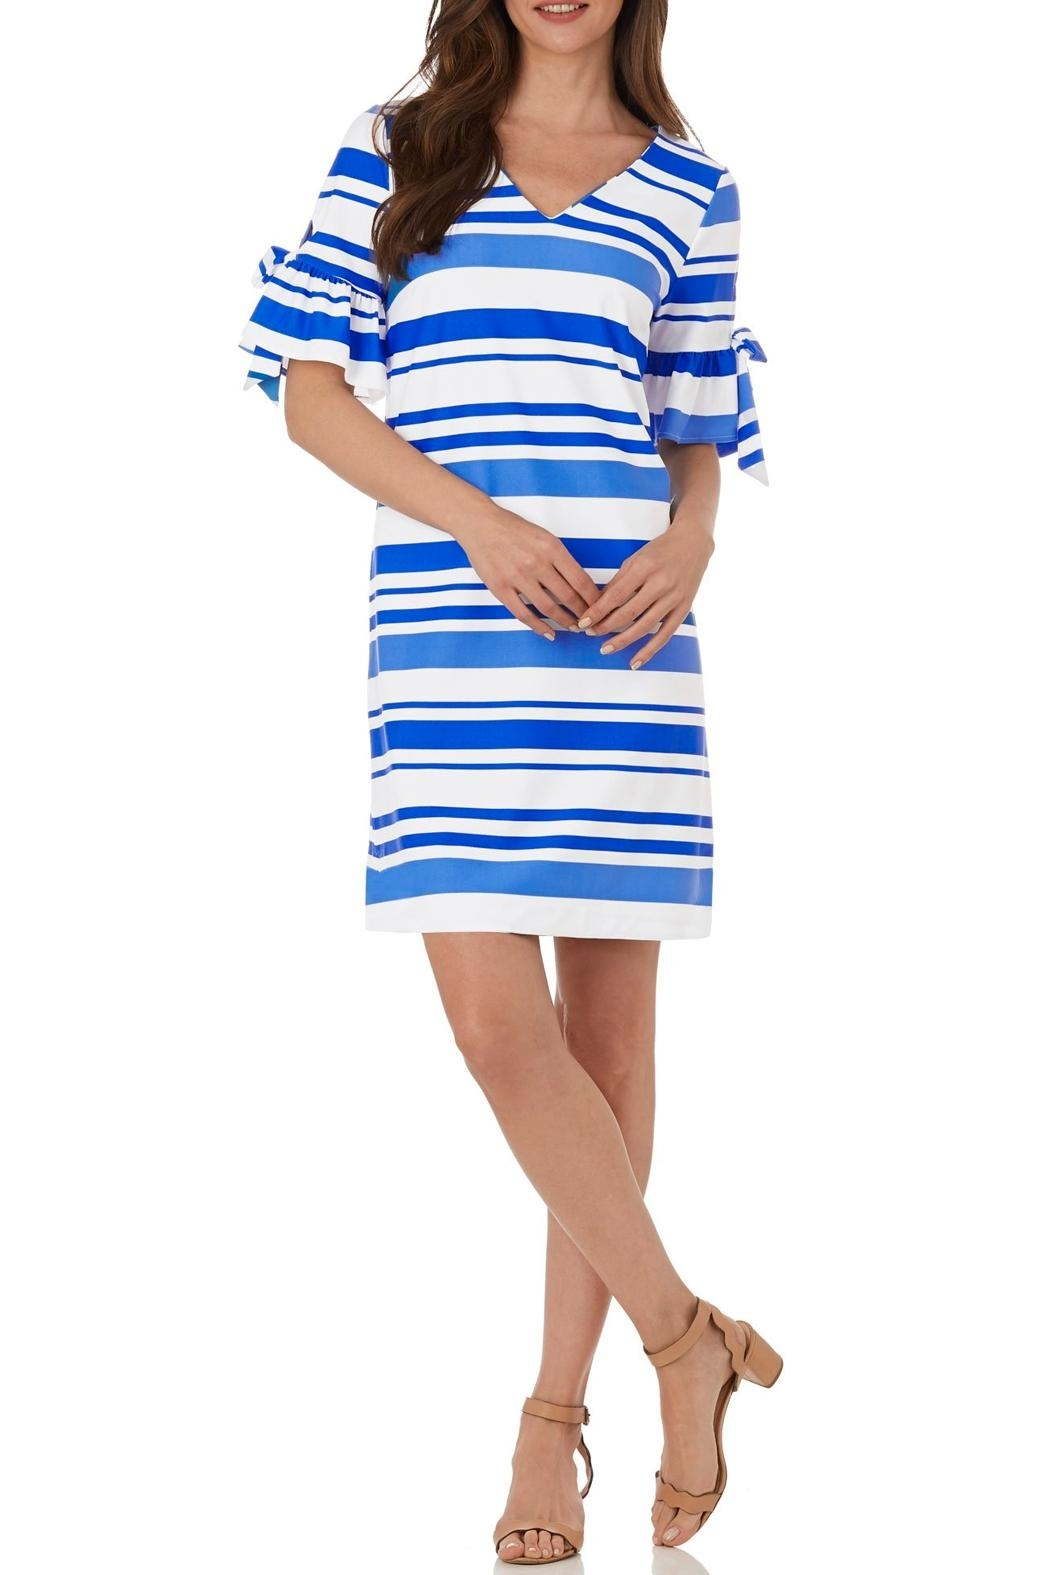 Jude Connally Cory Shift Dress - Front Cropped Image